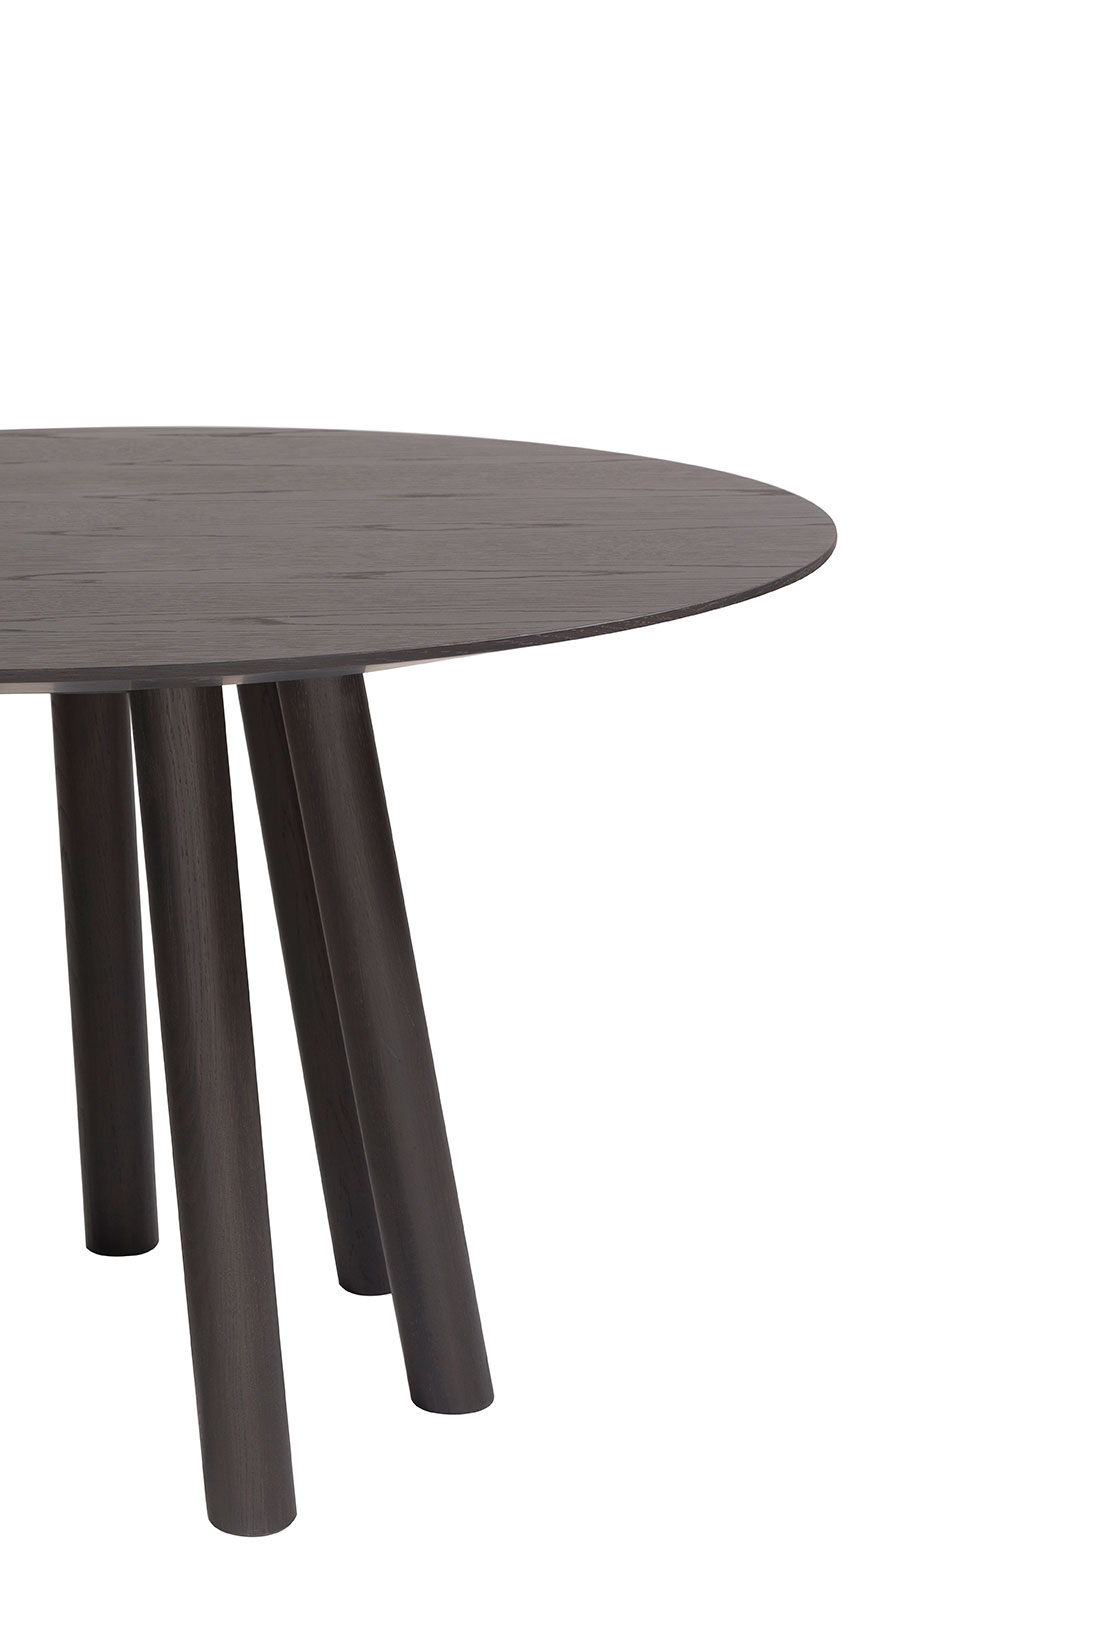 Mos-I-Ko 001 Ra Round Dining Table - <p>Round table in various sizes with shaped top with a thin edge,<br /> base with 7 legs in lacquered or solid wood.</p>  Maxfine top is available in Ø120 x H75 Cm and Ø130 x H75 Cm | Matter of Stuff